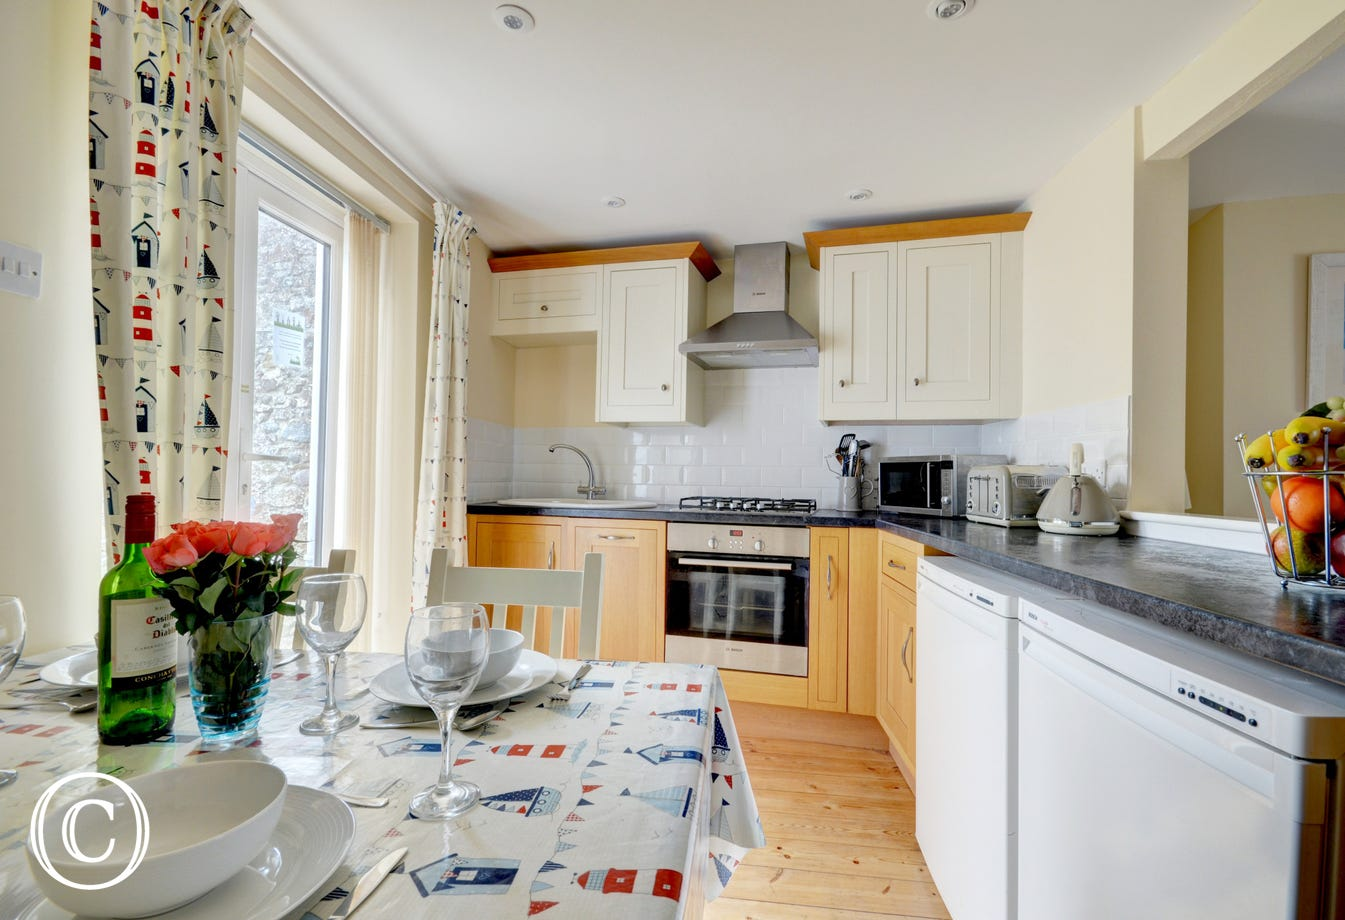 Enjoy breakfast and planning the day ahead in the light and airy kitchen